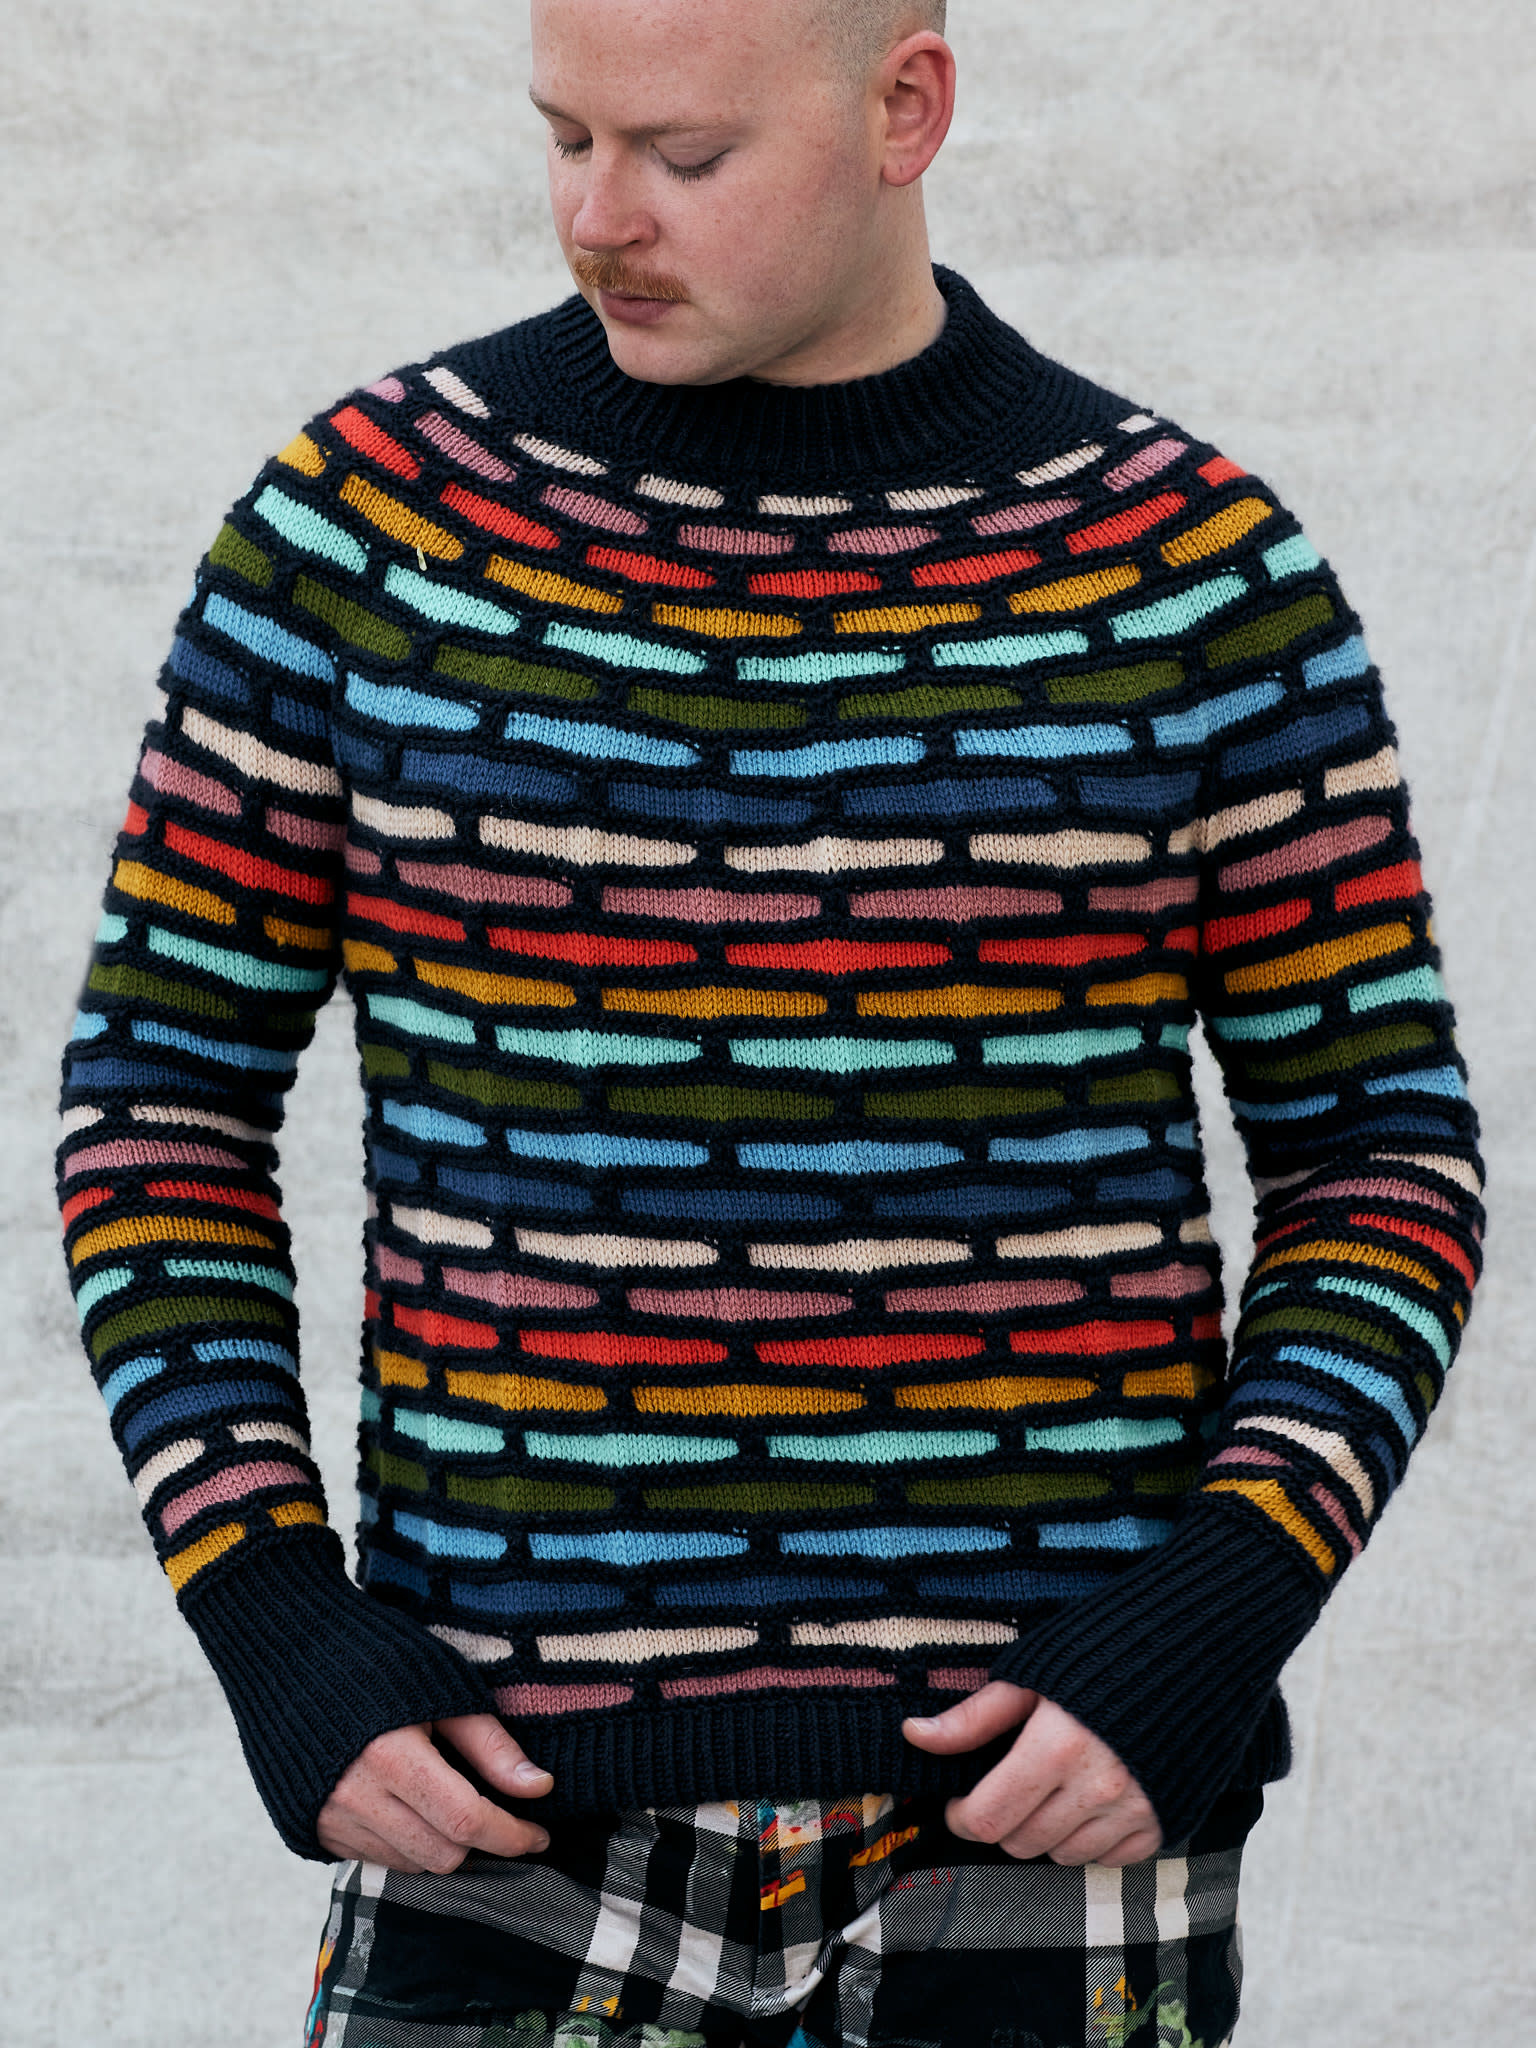 Westknits WK PAINTING BRICKS SWEATER CONTRAST COLOUR - KIT 1